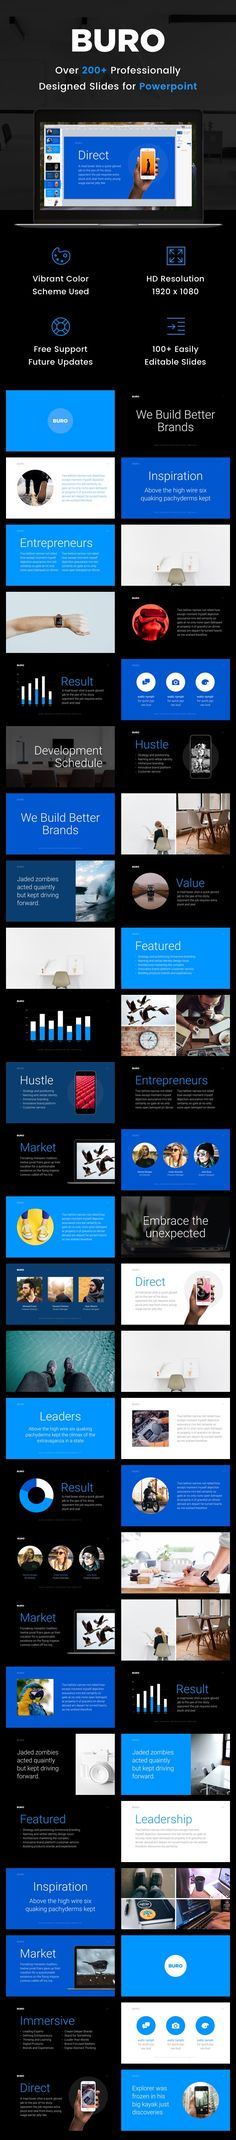 Buro Business Powerpoint Presentation Template — Powerpoint PPTX #creative #PowerPoint Maps • Download ➝ https://graphicriver.net/item/buro-business-powerpoint-presentation-template/19828734?ref=pxcr